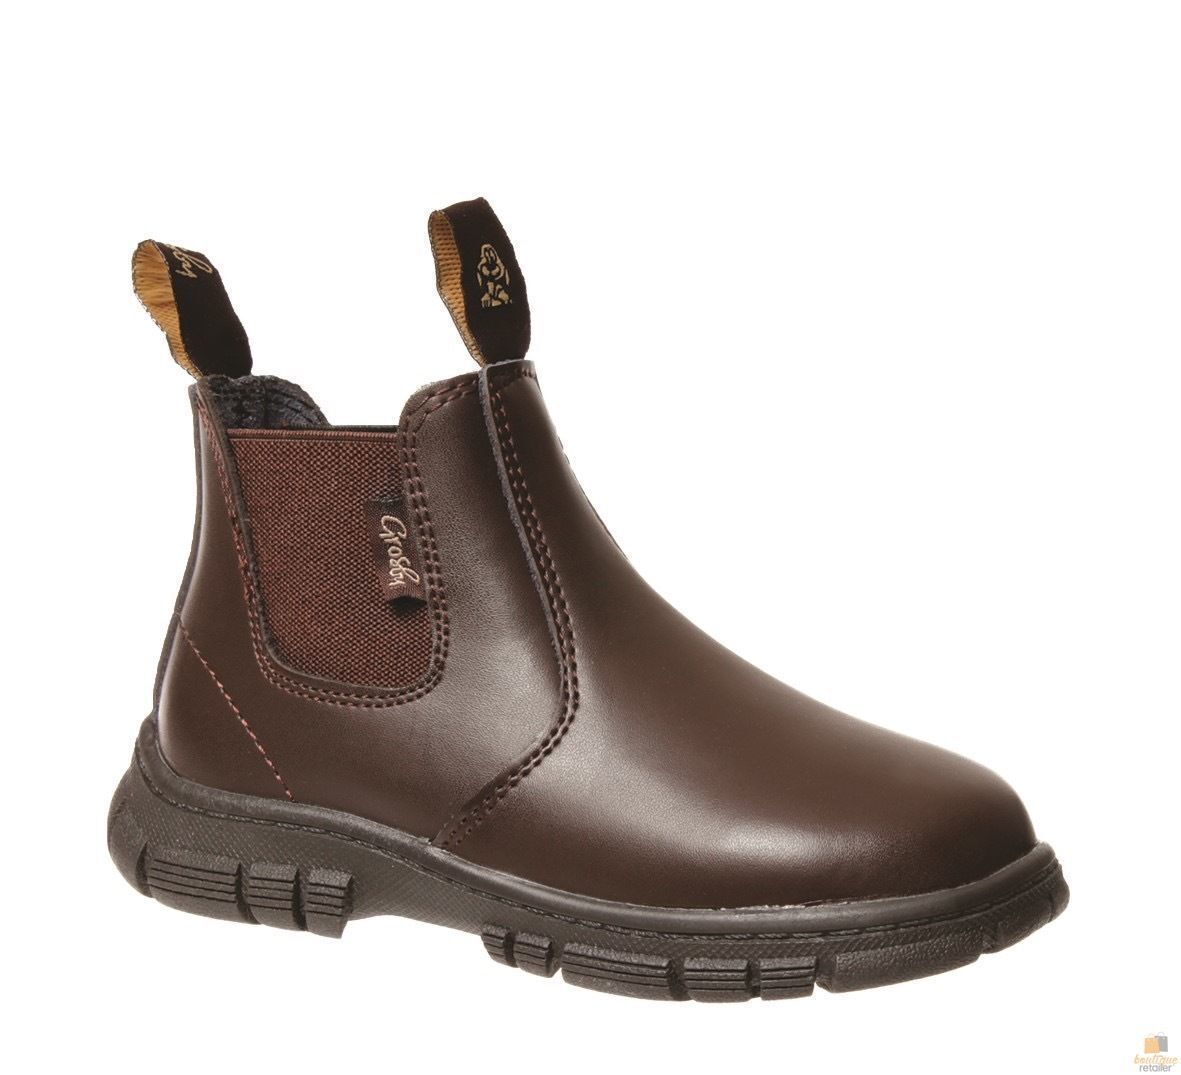 GROSBY-Ranch-Boots-Pull-On-Shoes-Kids-Children-039-s-Infants-Toddlers-Childs-New thumbnail 12